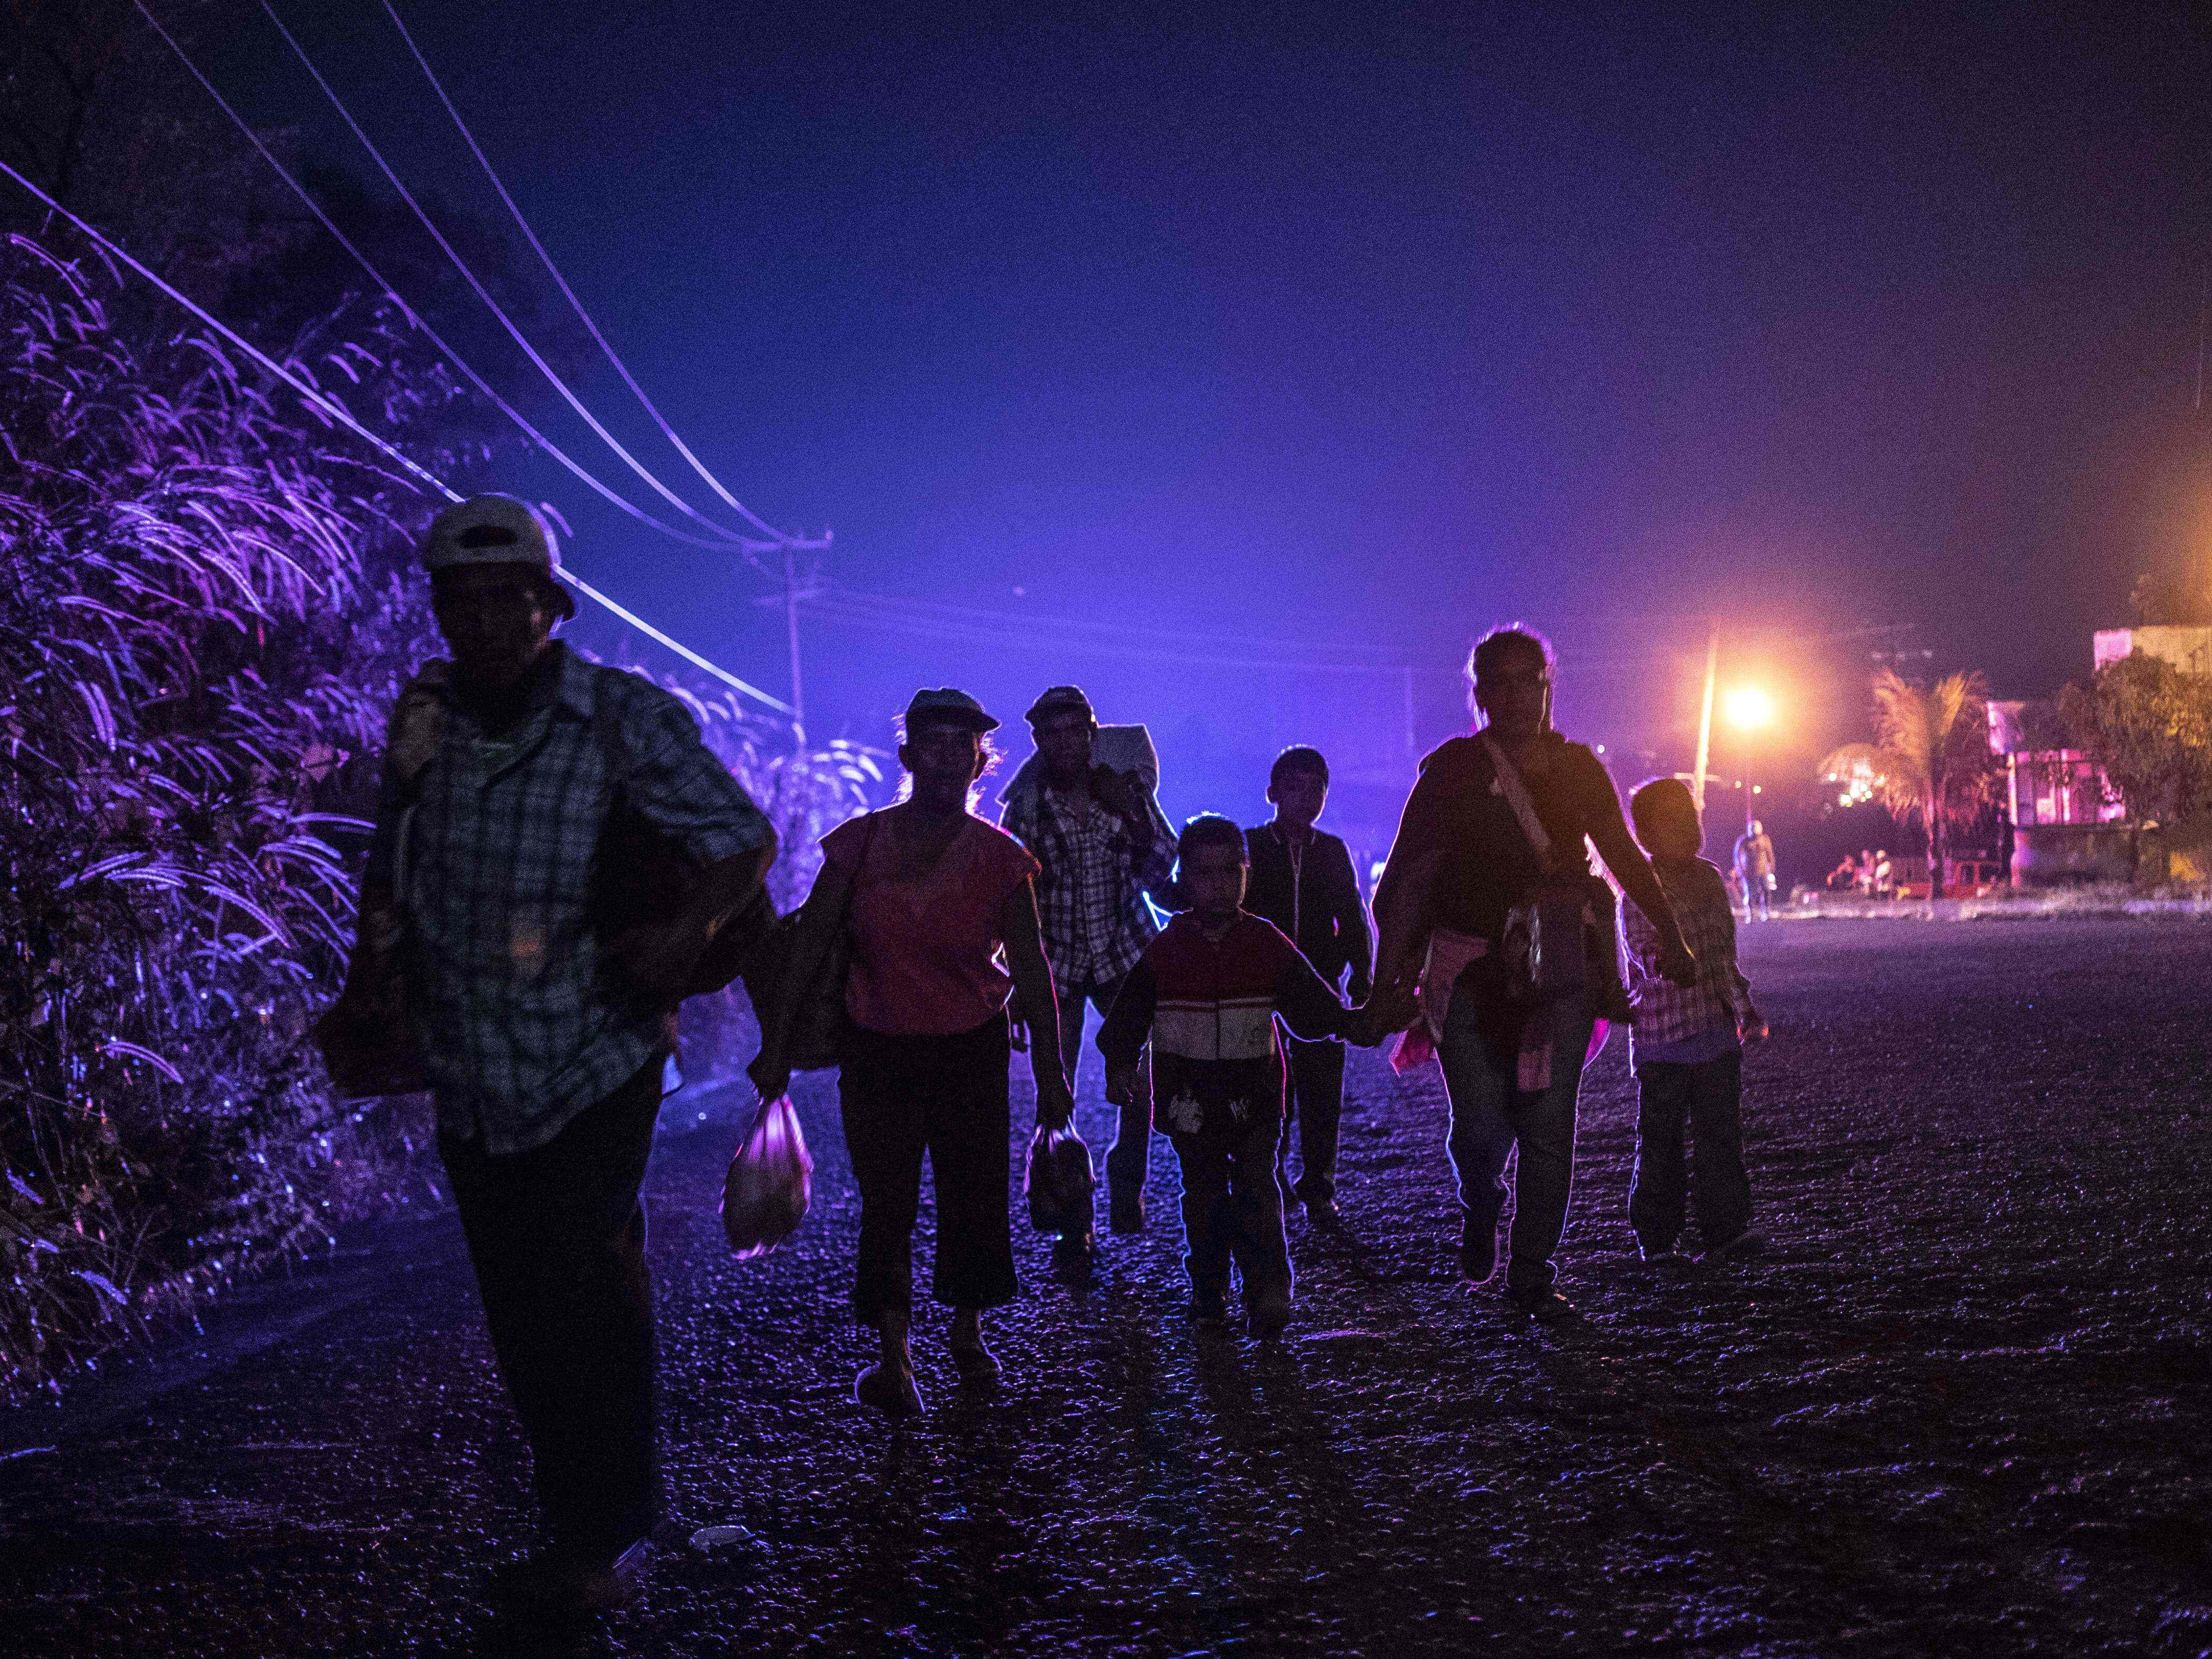 Central  American migrants taking part in a caravan heading to the U.S., walk in Huixtla, Chiapas state, Mexico, on Oct. 24, 2018.